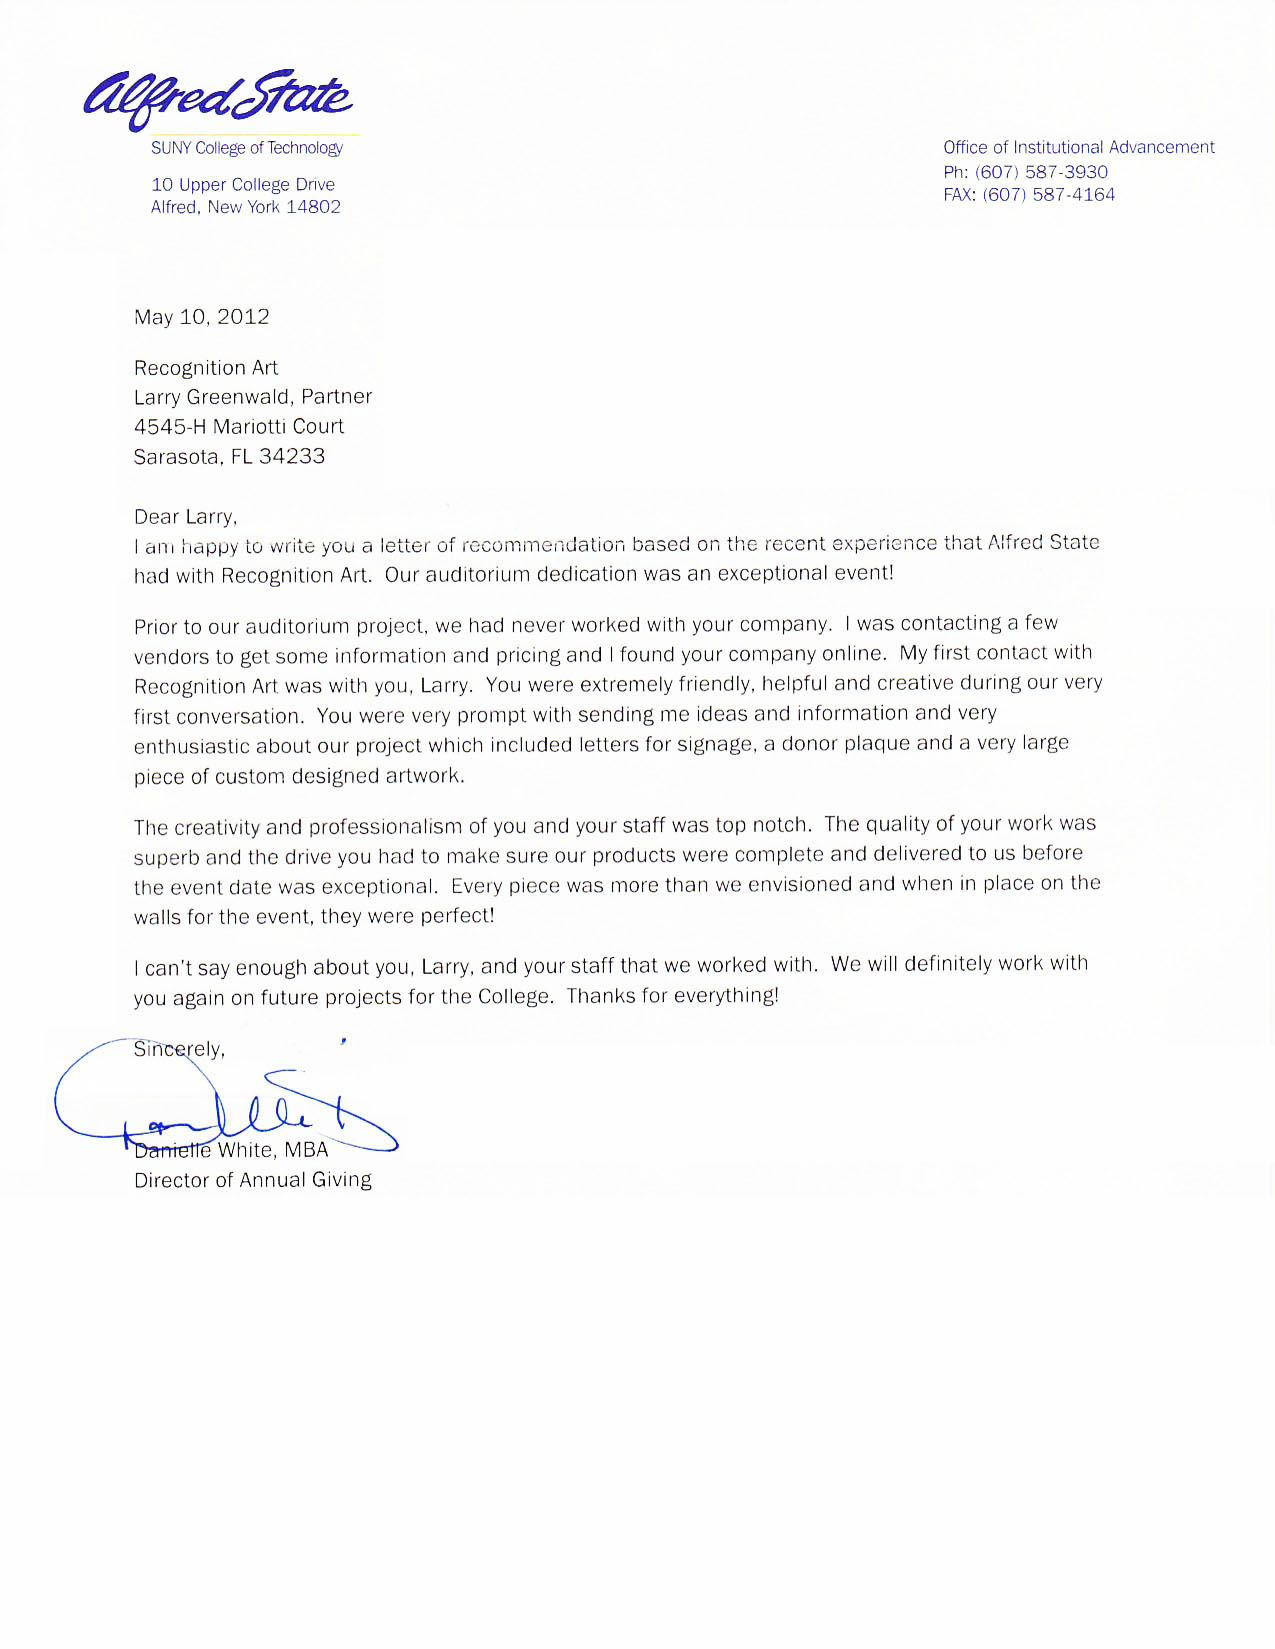 Letter Of Recommendation Alfred State Donordisplay